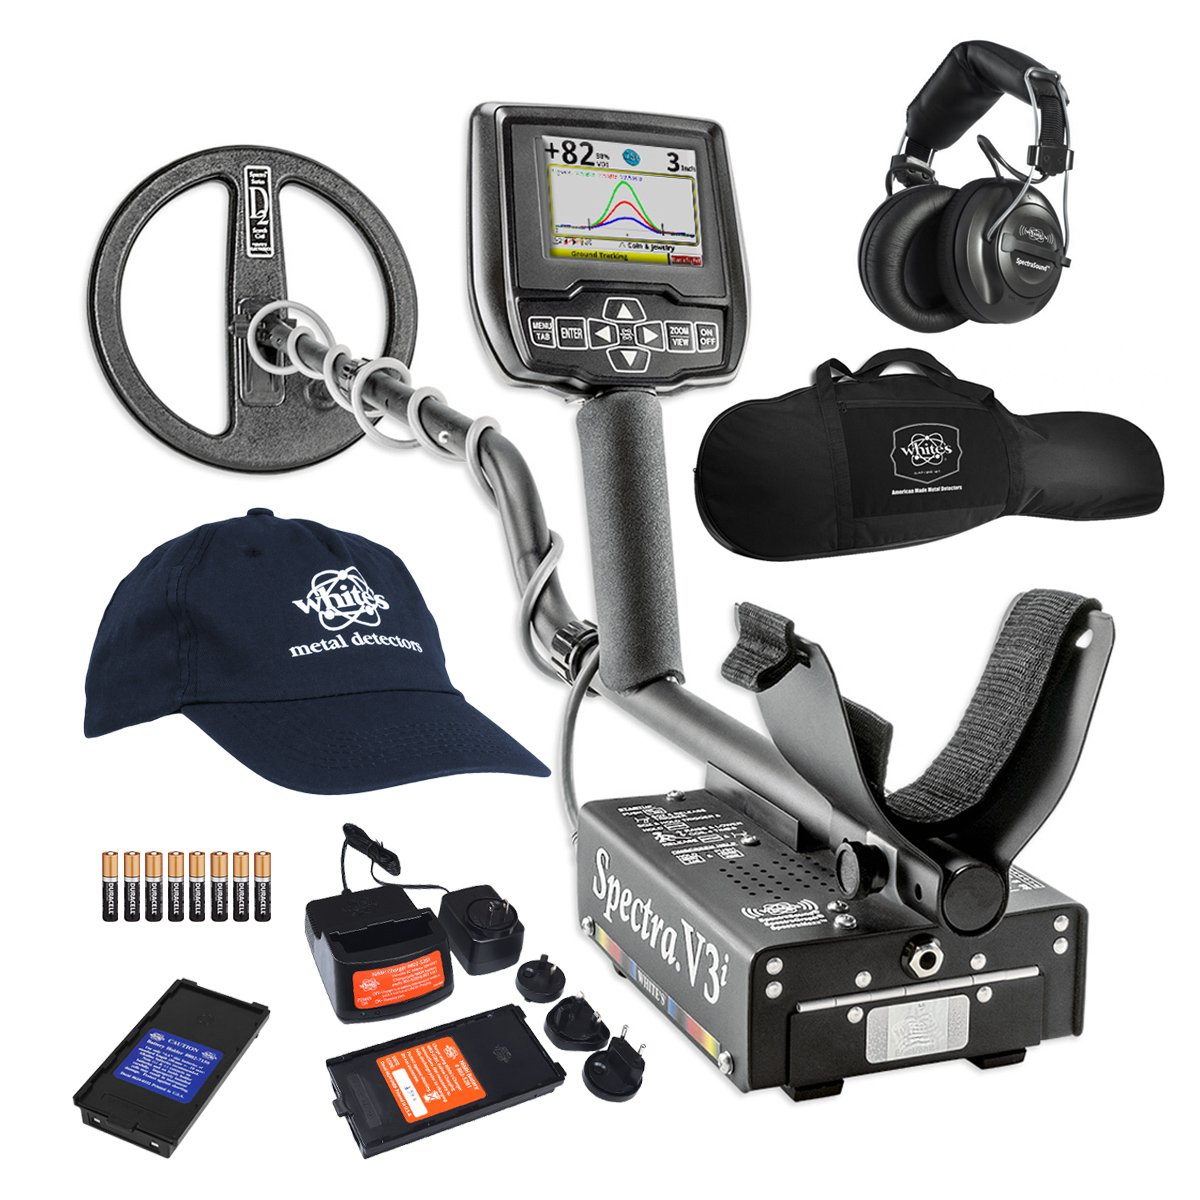 White s Spectra V3i HP Metal Detector with Padded Gun Style Carry Bag and Baseball Cap – 800-0329-HP